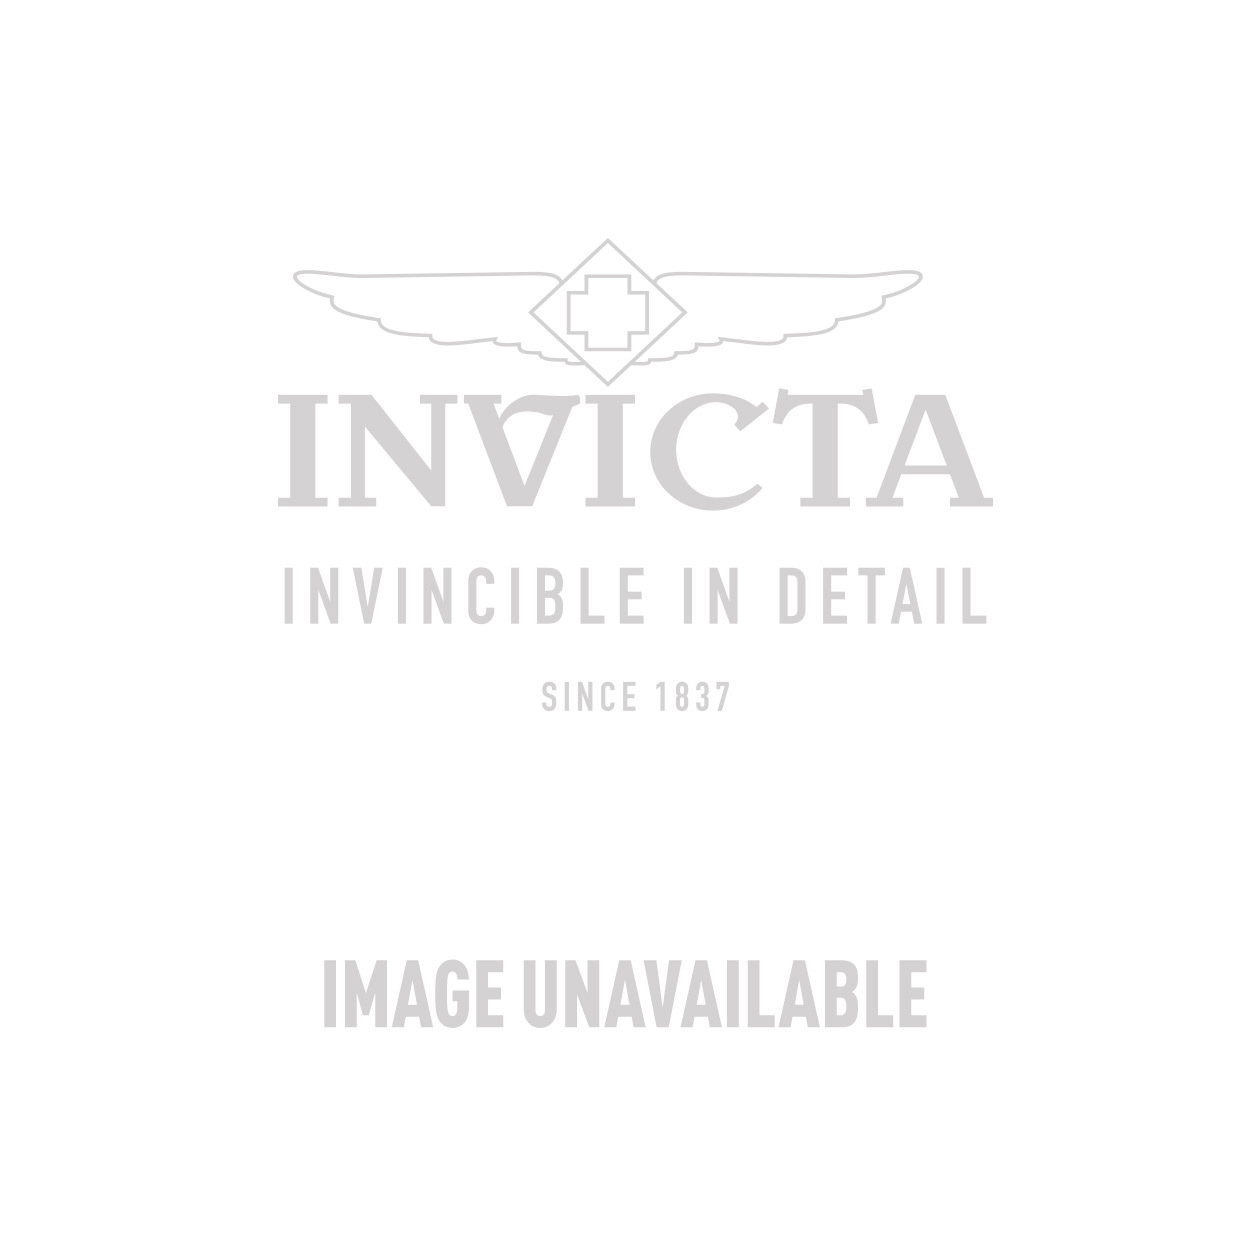 Invicta Reserve Swiss Made Quartz Watch - Stainless Steel case Stainless Steel band - Model 90166